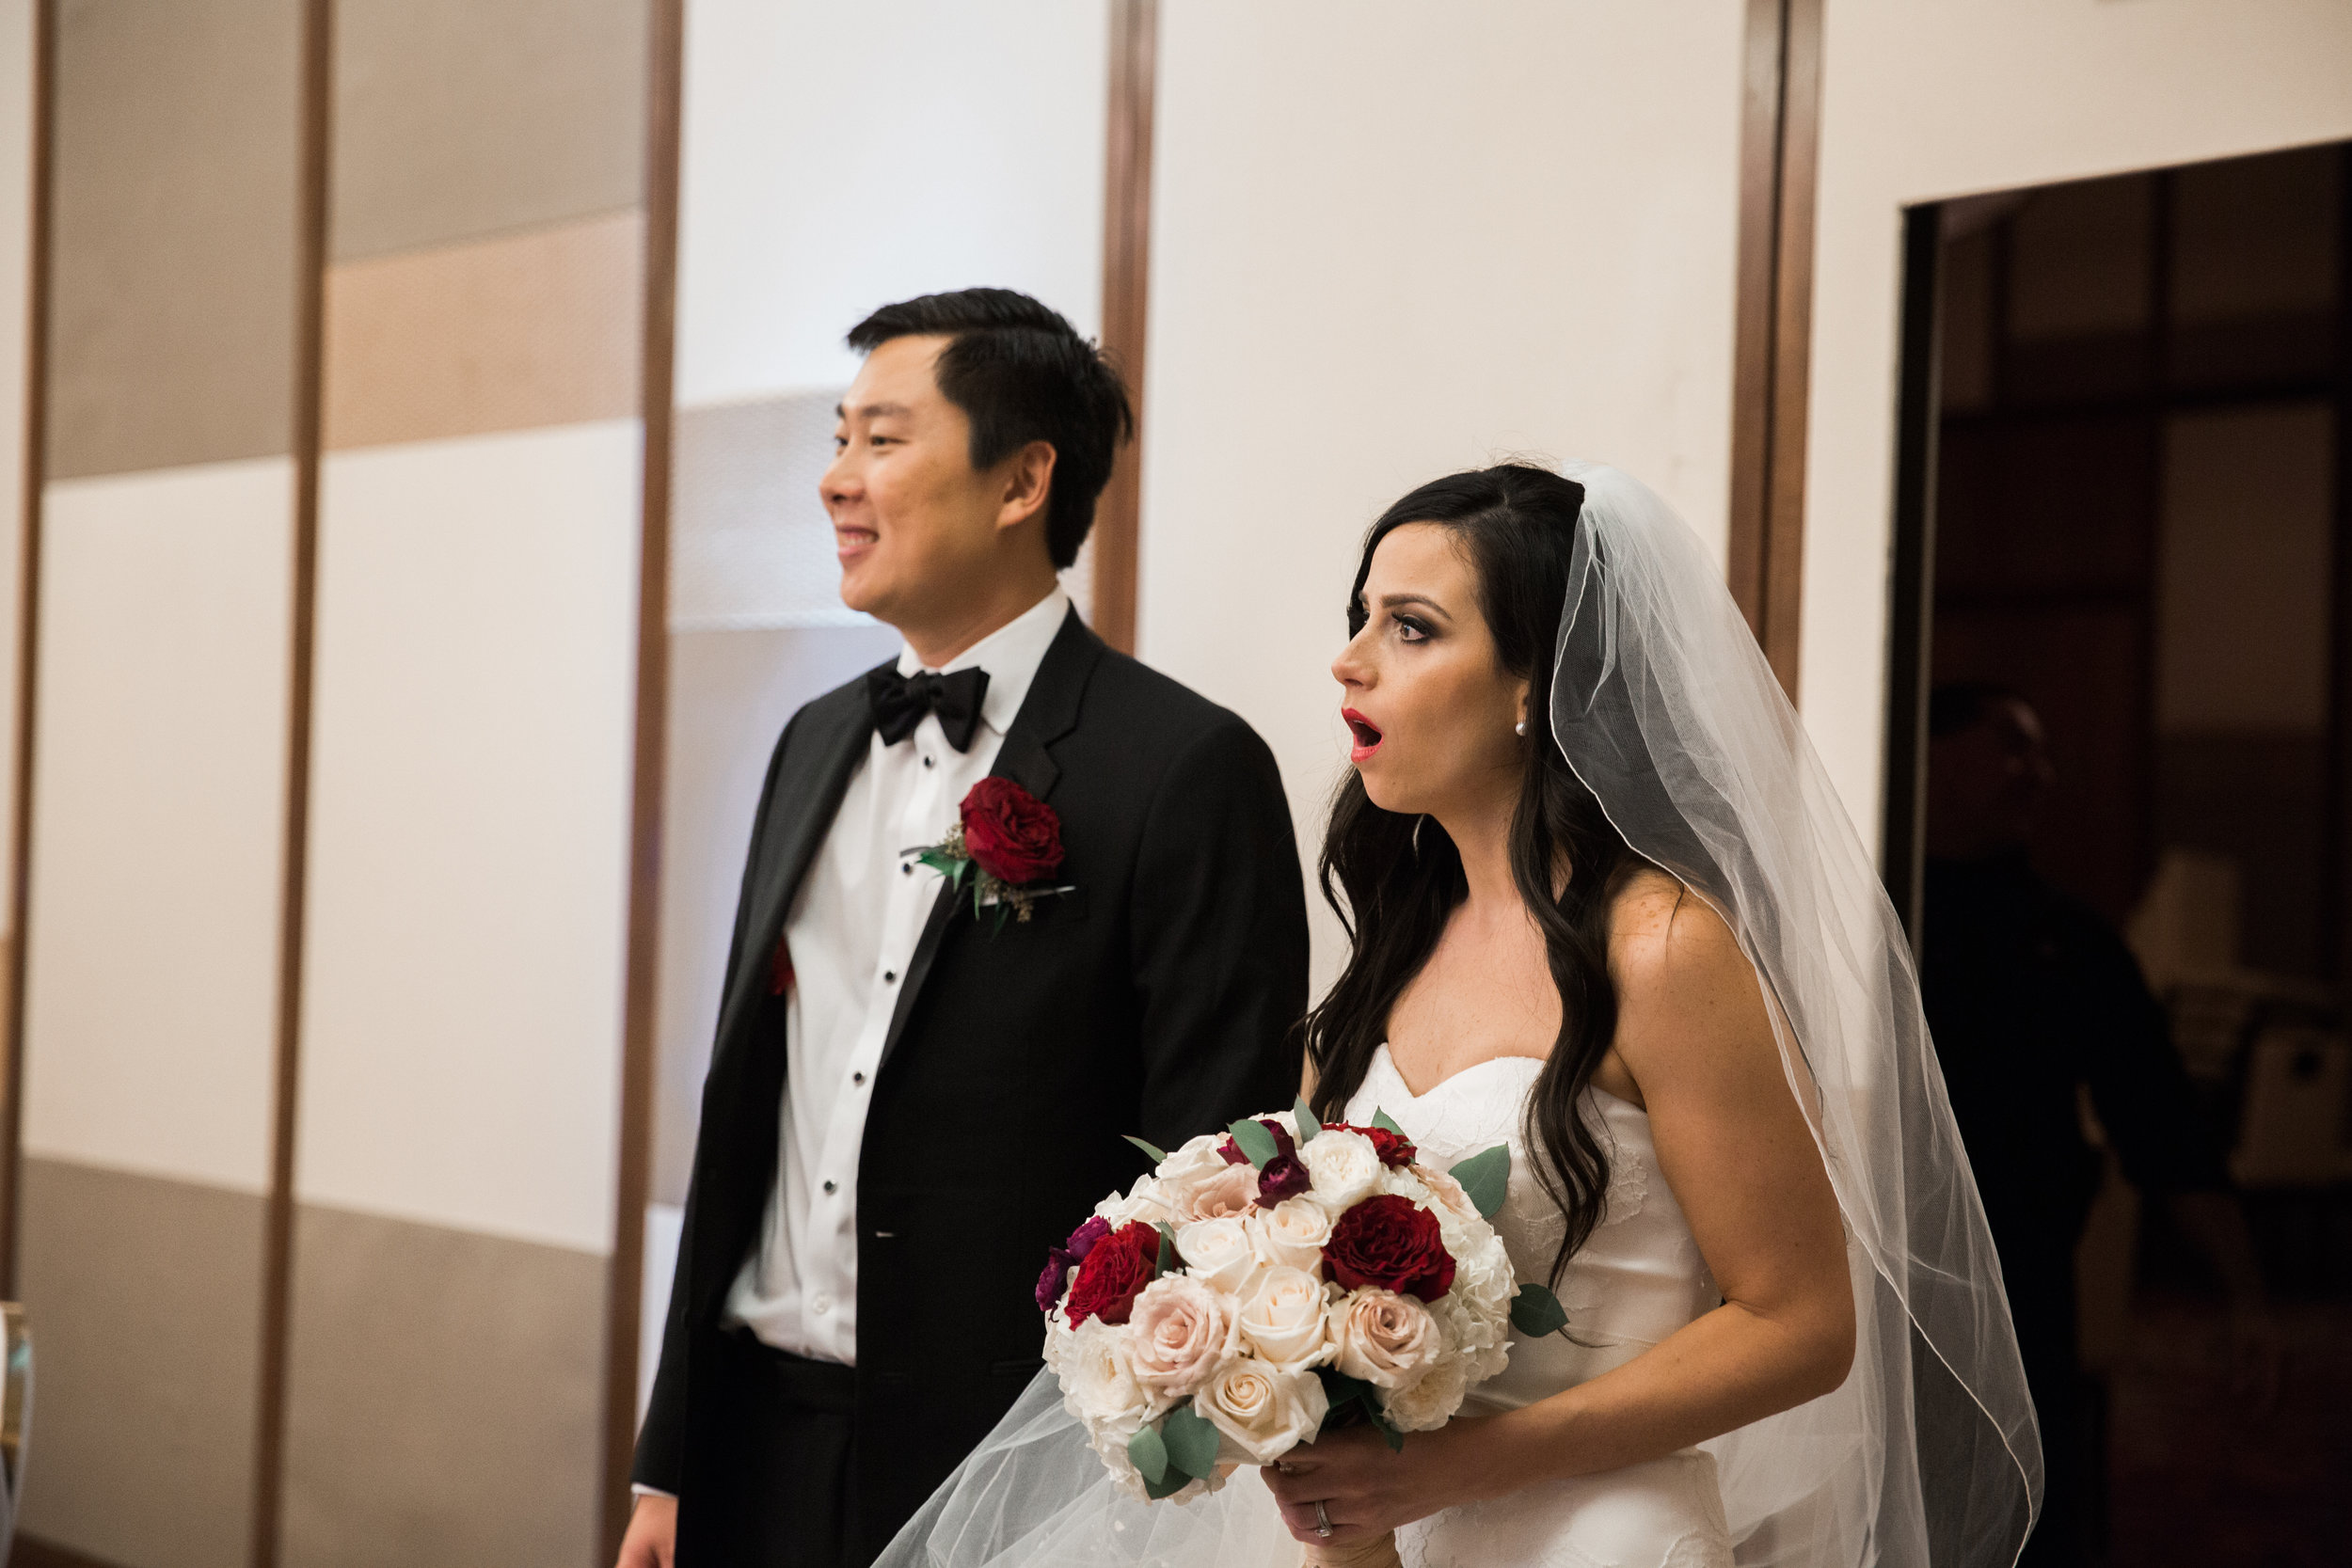 Reception reveal. Bride and groom see the wedding for the first time.Luxury wedding at the Mandarin Oriental with a color scheme of white, blush, and pops of wine red produced by Las Vegas Wedding Planner Andrea Eppolito with photos by Stephen Salazar Photography.